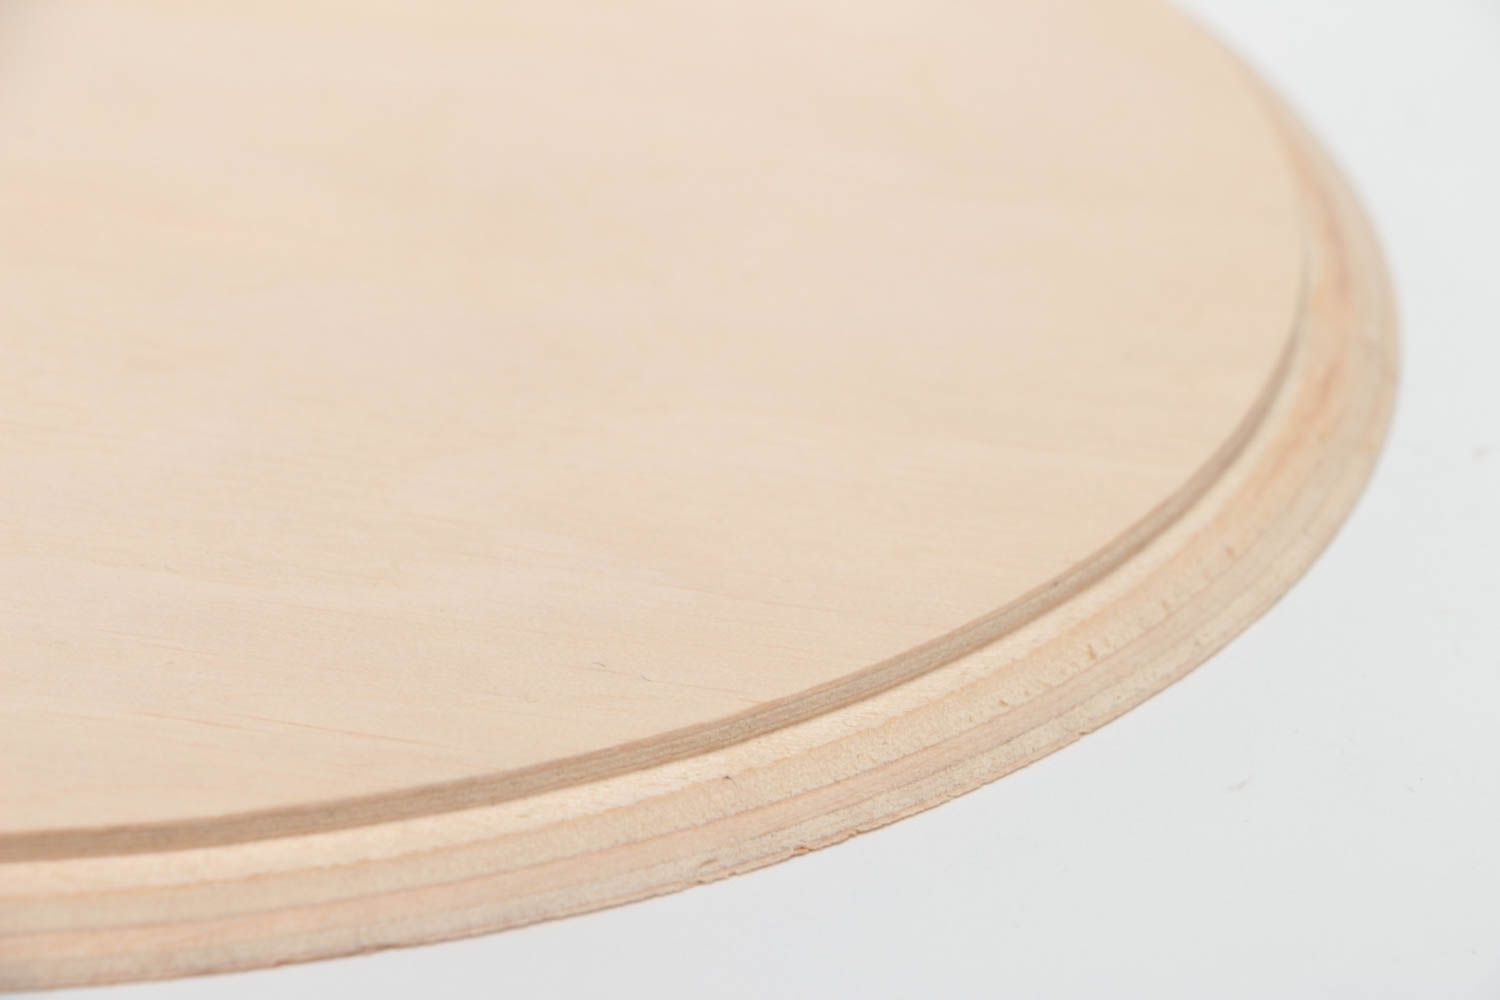 blanks for decorating Handmade simple large round plywood craft blank for decoupage wall panel  - MADEheart.com